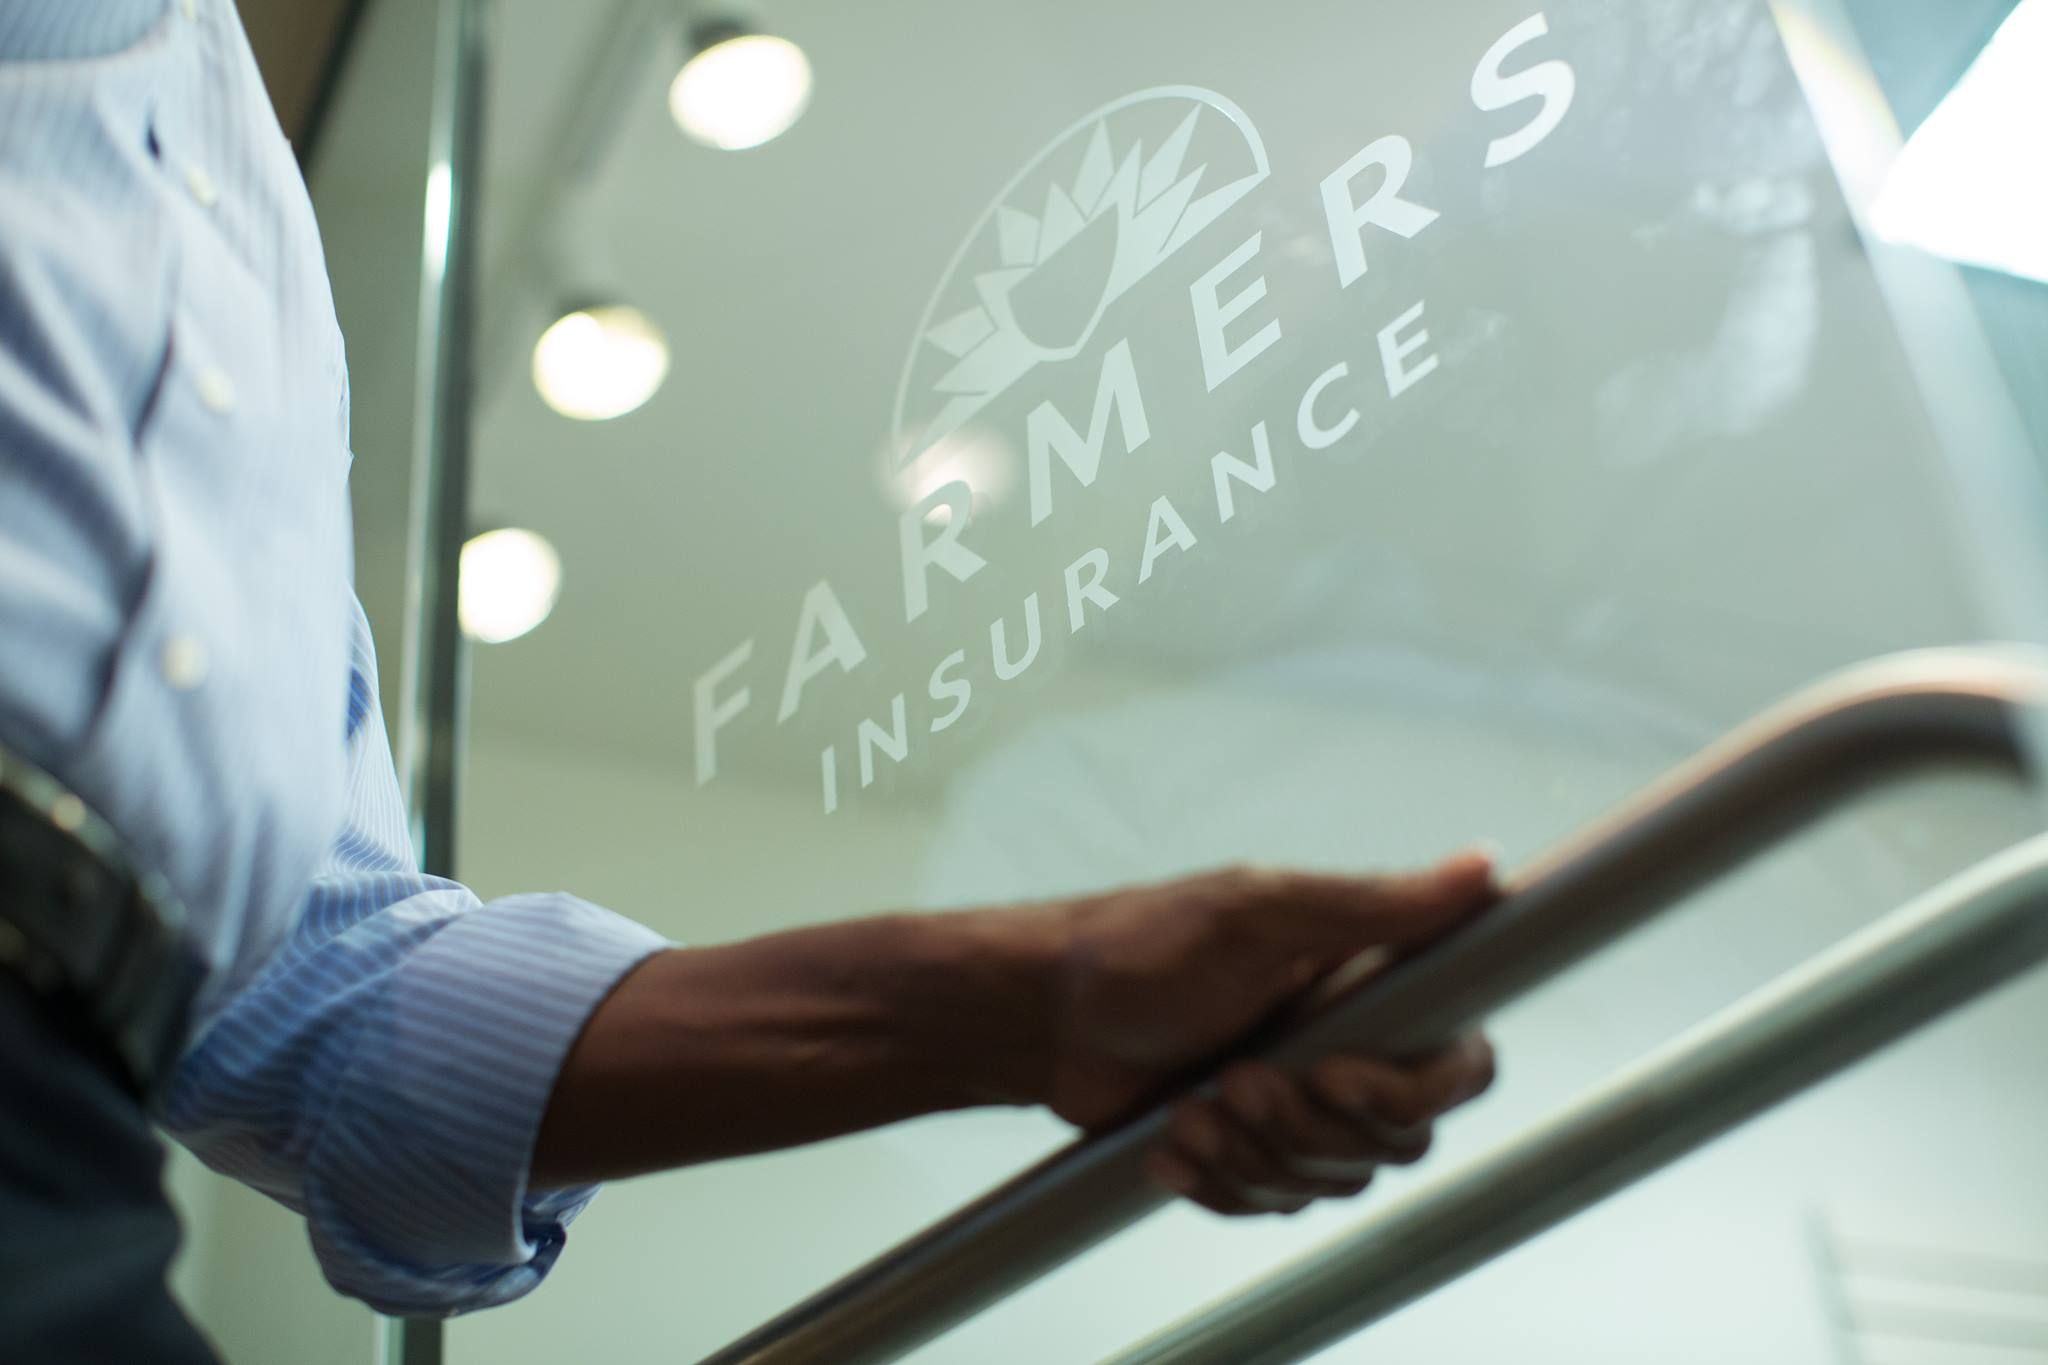 As A Farmers Agent I Have Seen A Lot So I Can Discuss Coverage